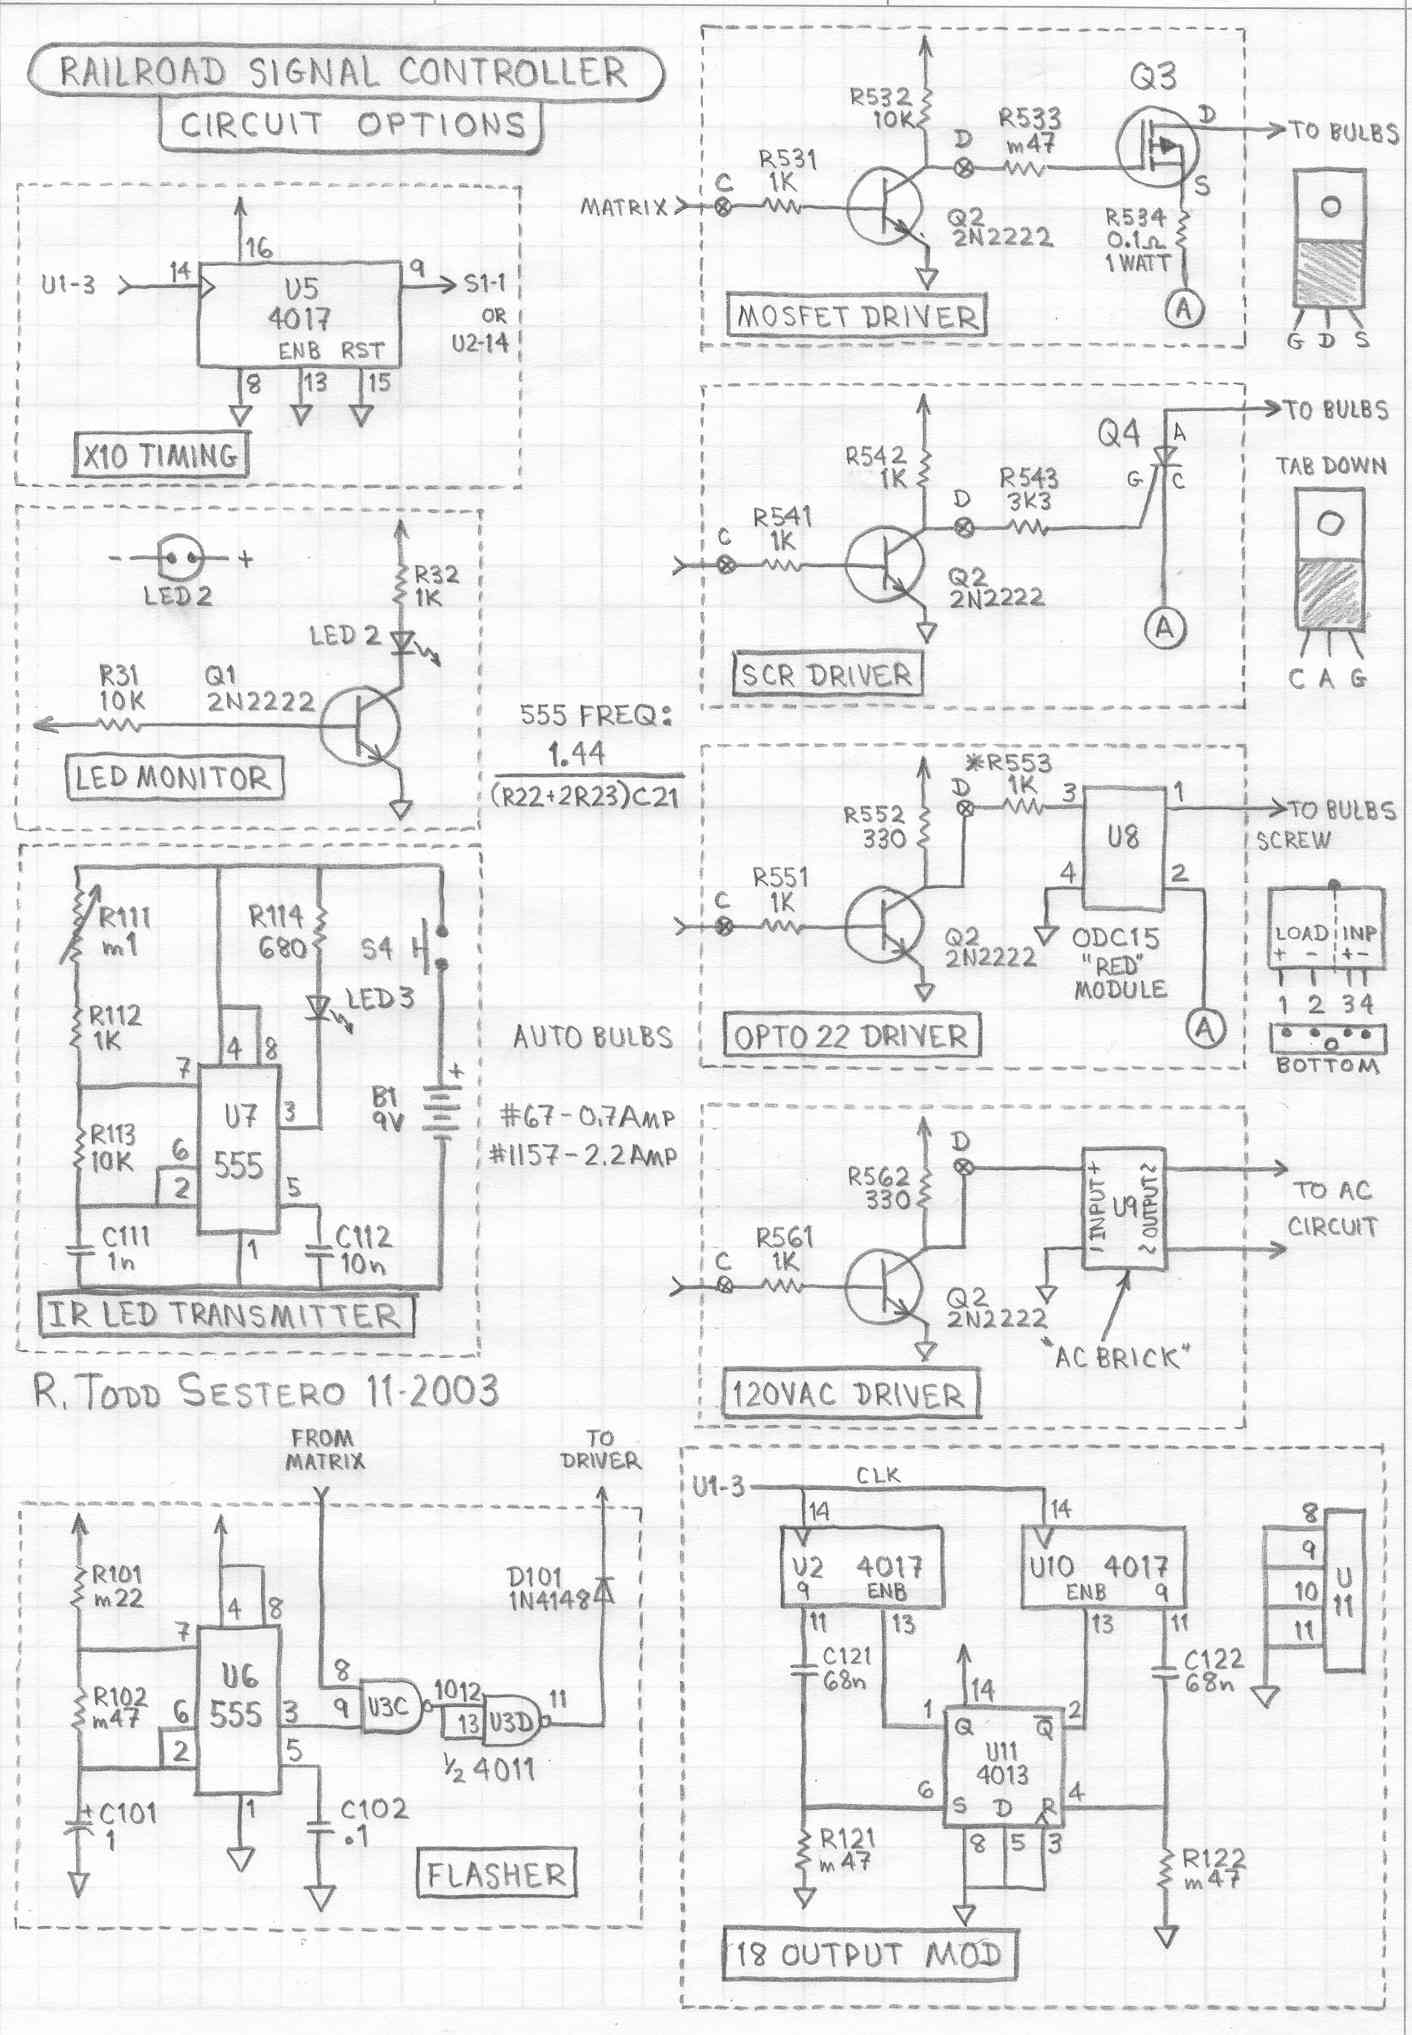 New Circuits Page 62 Pulse Generator Astable Multivibrator Circuit Diagram Tradeofic Railroad Signal Driver